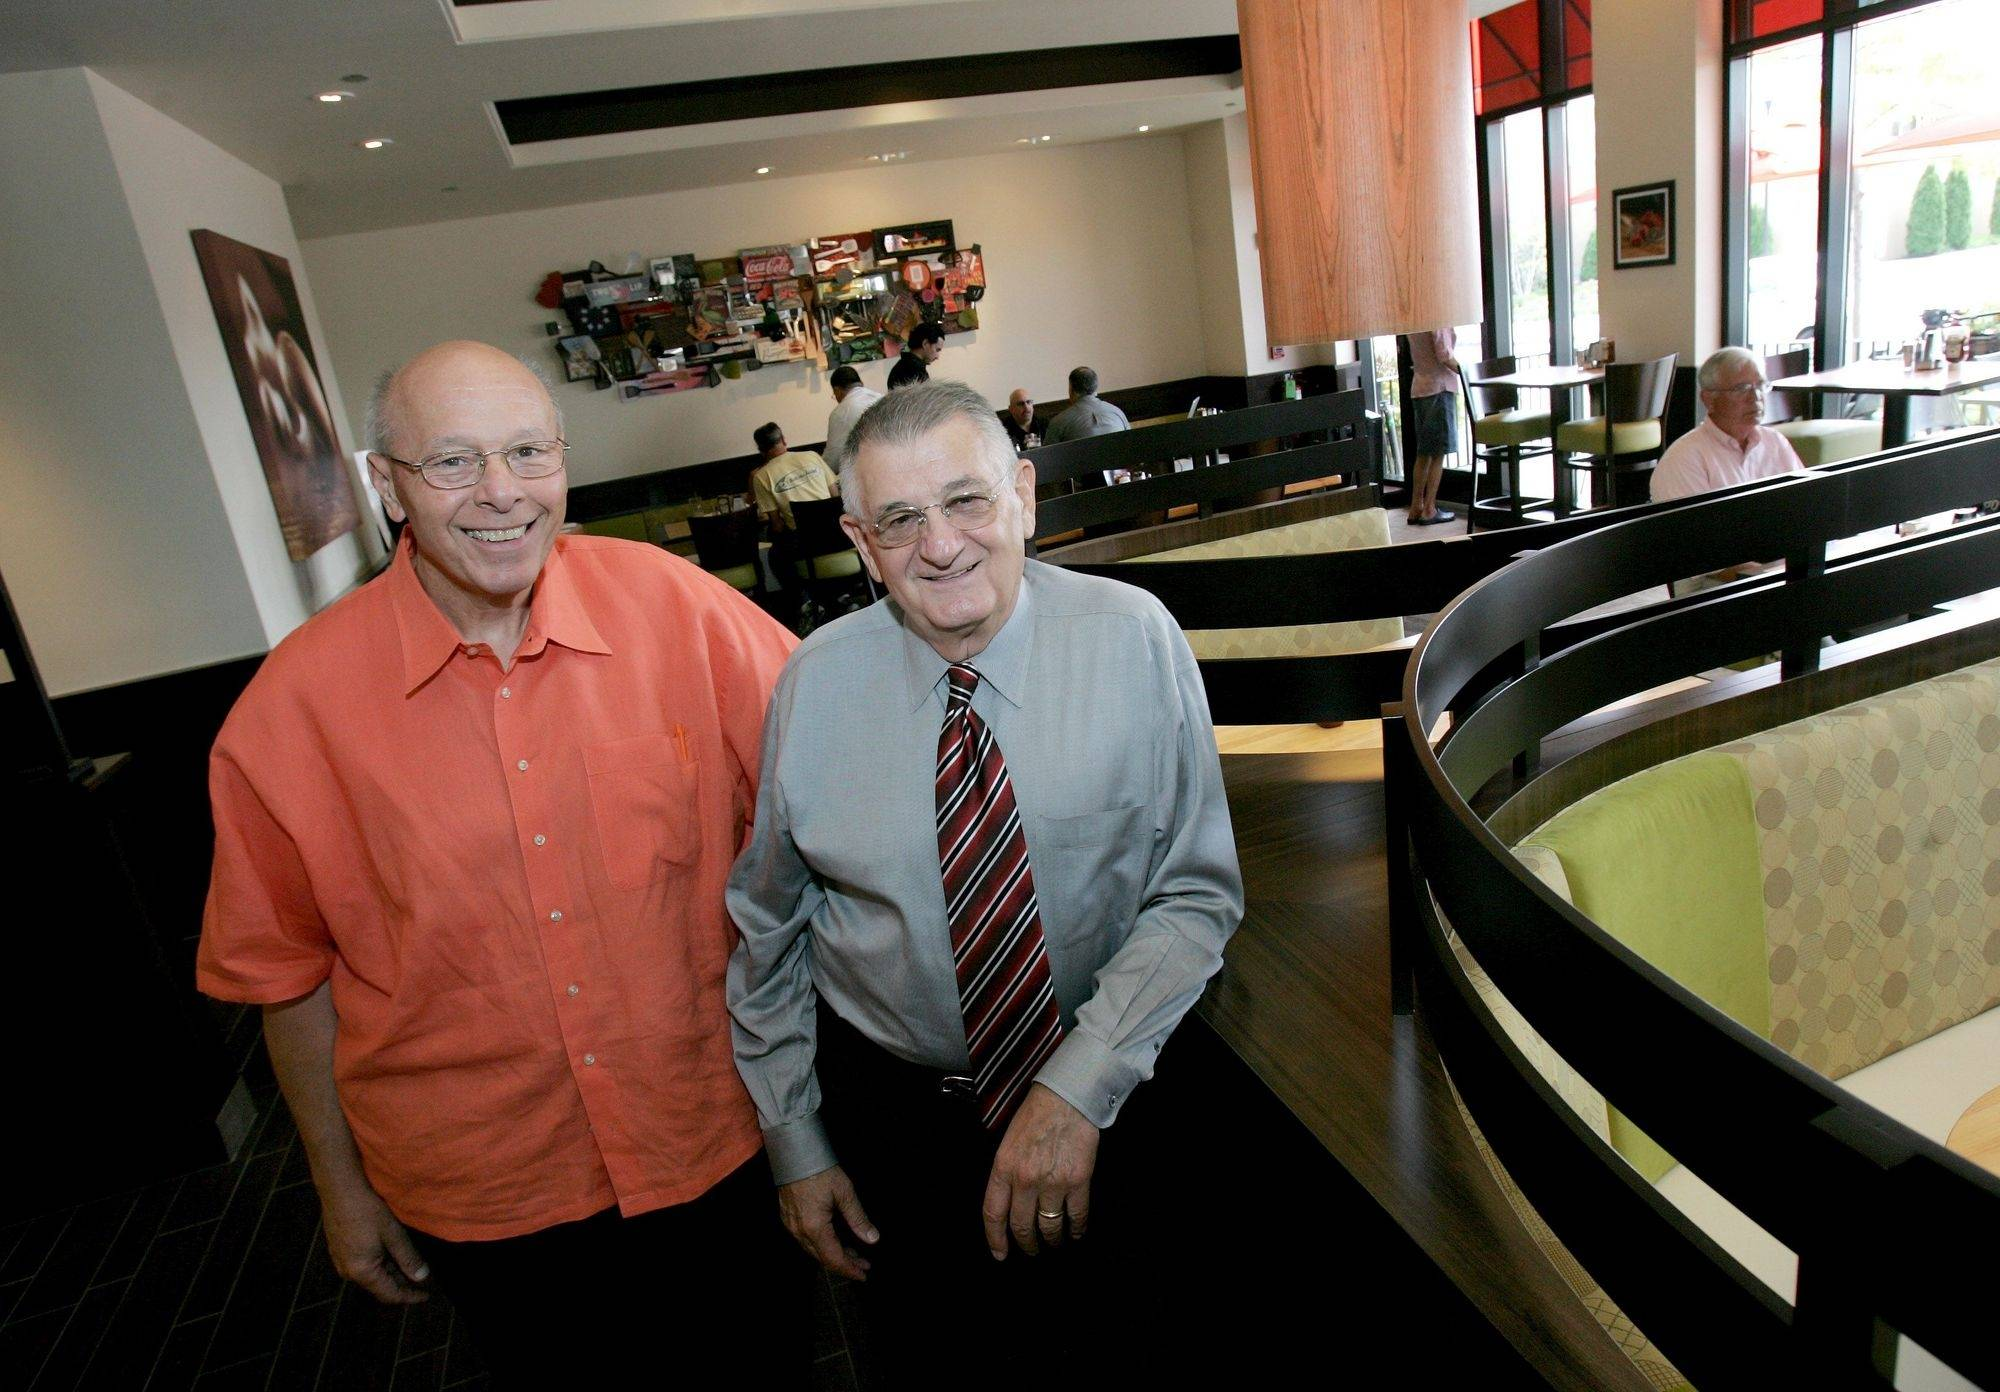 Ed Rensi, left, and Tom Dentice, retired McDonald's executives, are opening a gourmet burger restaurant Friday in Lombard.